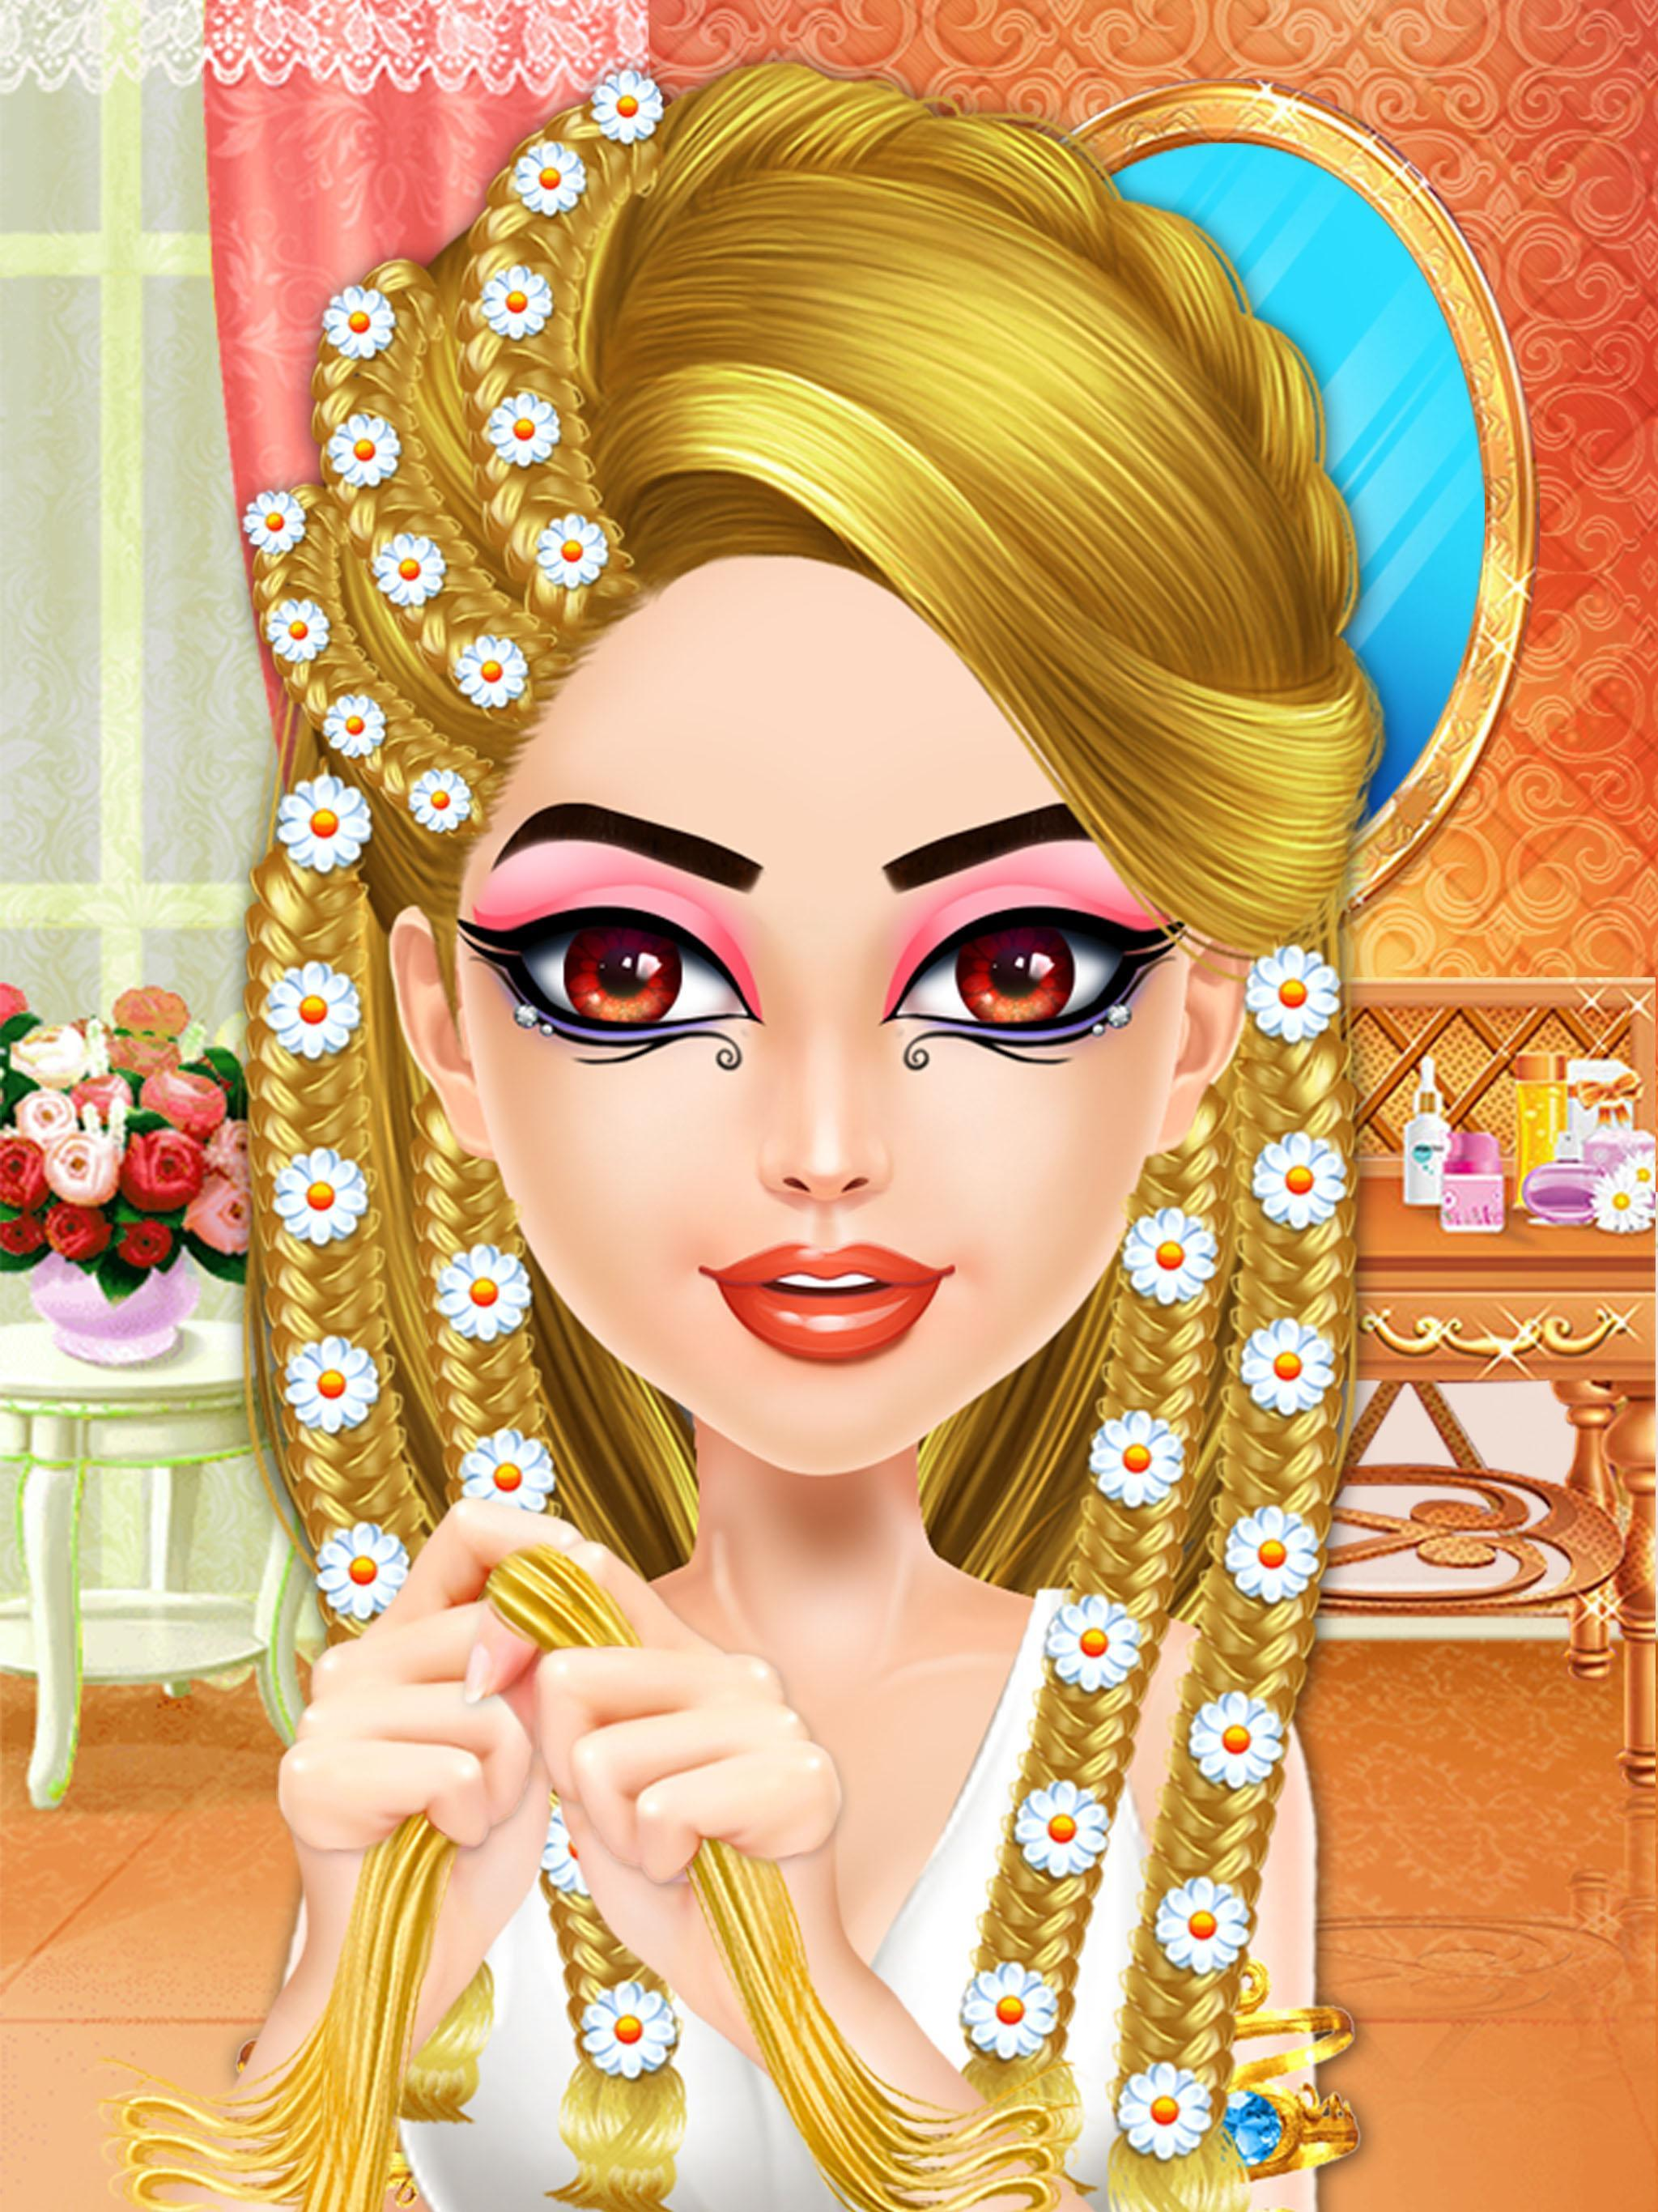 Egypt Princess Braids Girls Hair Salon Games For Android Apk Download